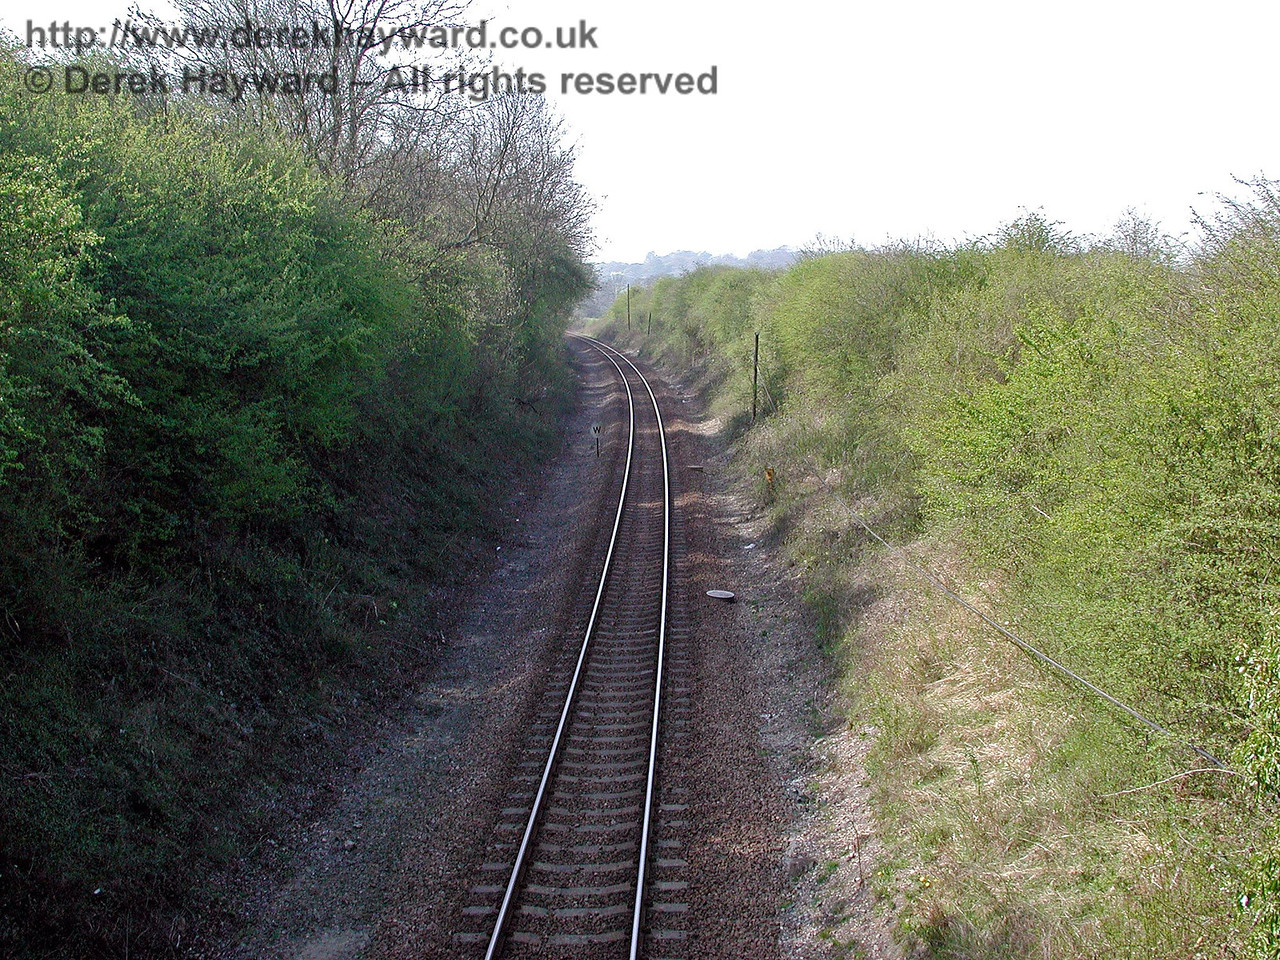 Looking north towards Cowden from the second overbridge south of Cowden (Marchants Bridge). 18.04.2003